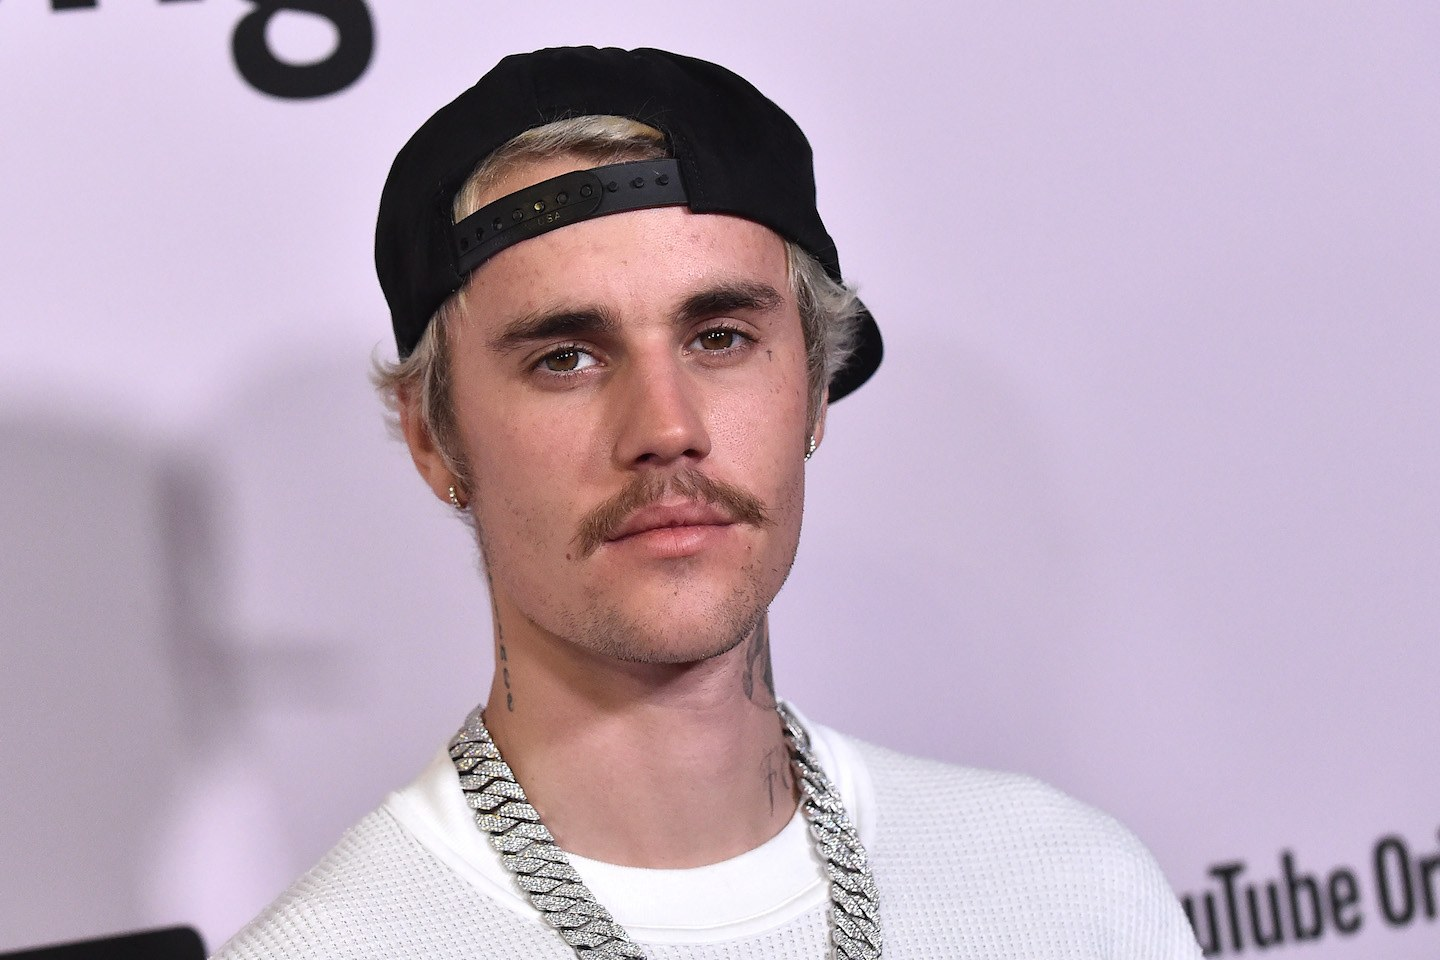 Justin Bieber releases new album 'Changes'